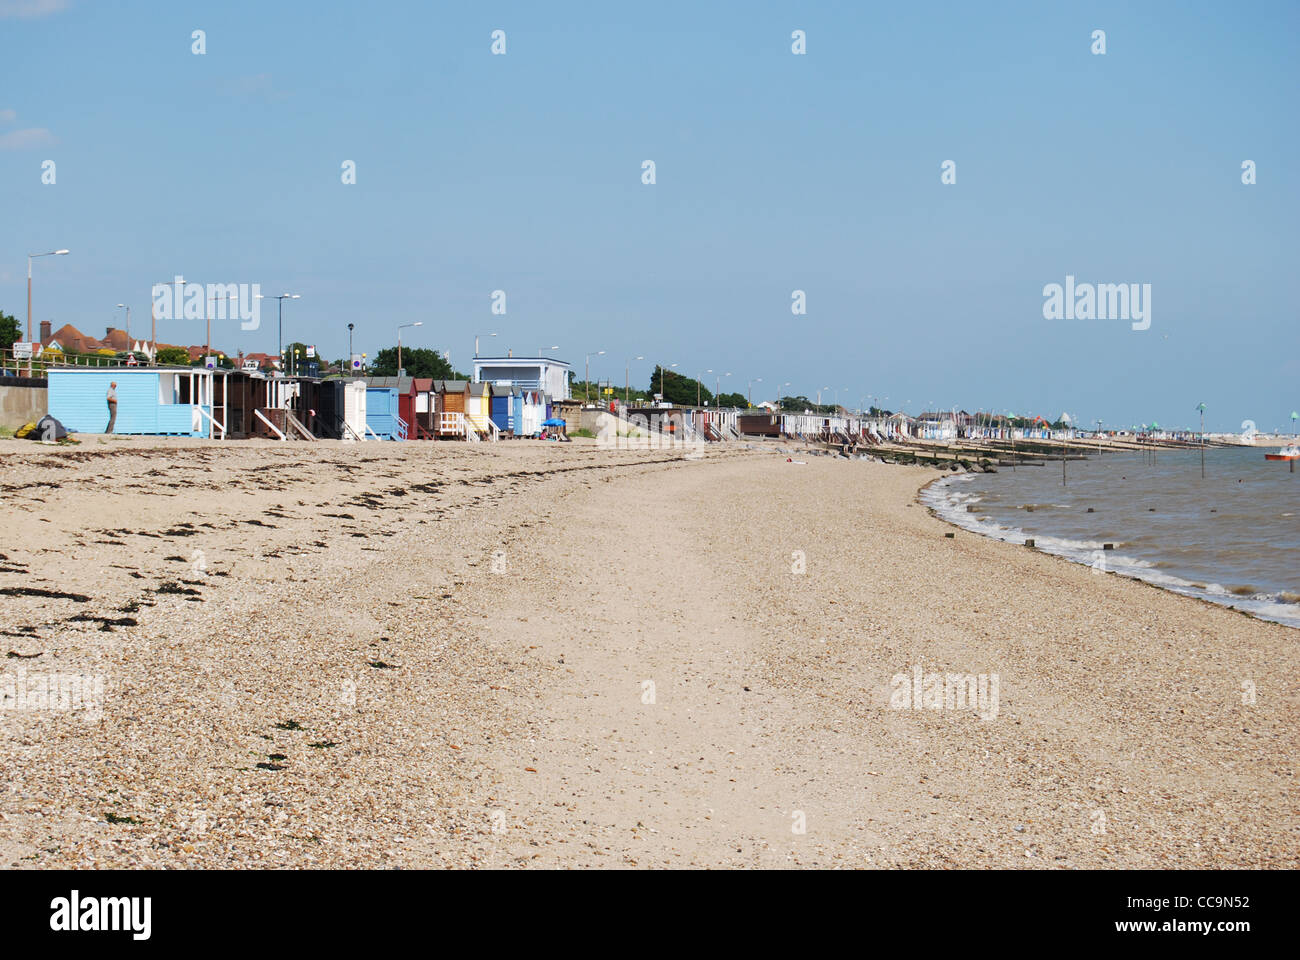 Beach Huts on the Beach at Thorpe Bay, Southend-on-Sea, Essex, England, UK Stock Photo